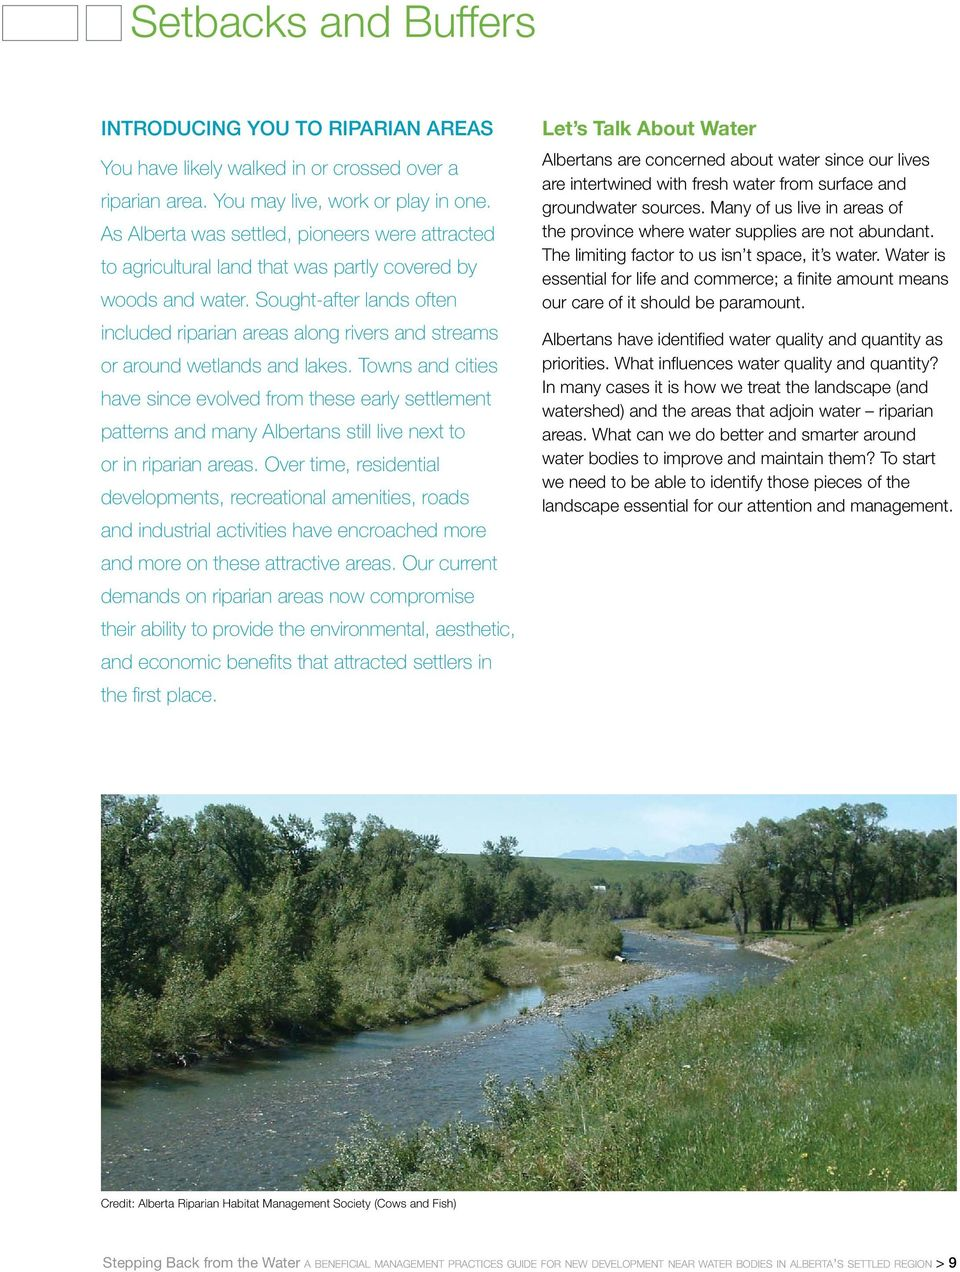 Sought-after lands often included riparian areas along rivers and streams or around wetlands and lakes.